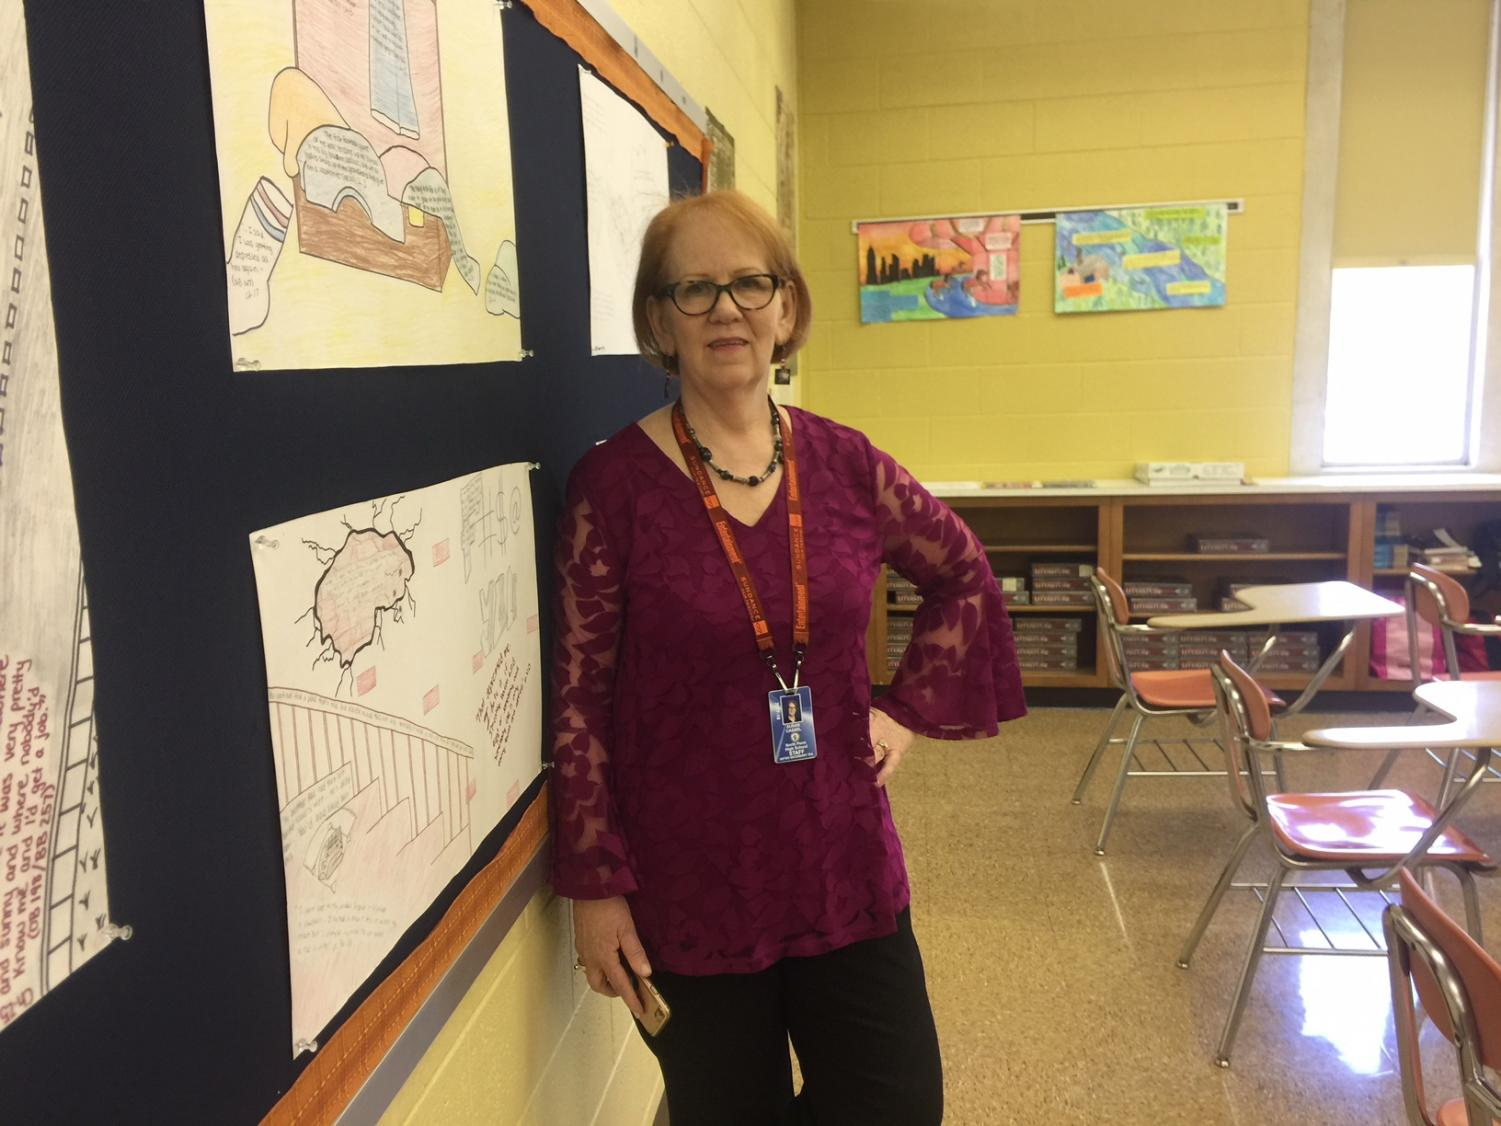 One of North Penn's most well known English teachers, Mrs. Cassel takes pride in both her students and books.